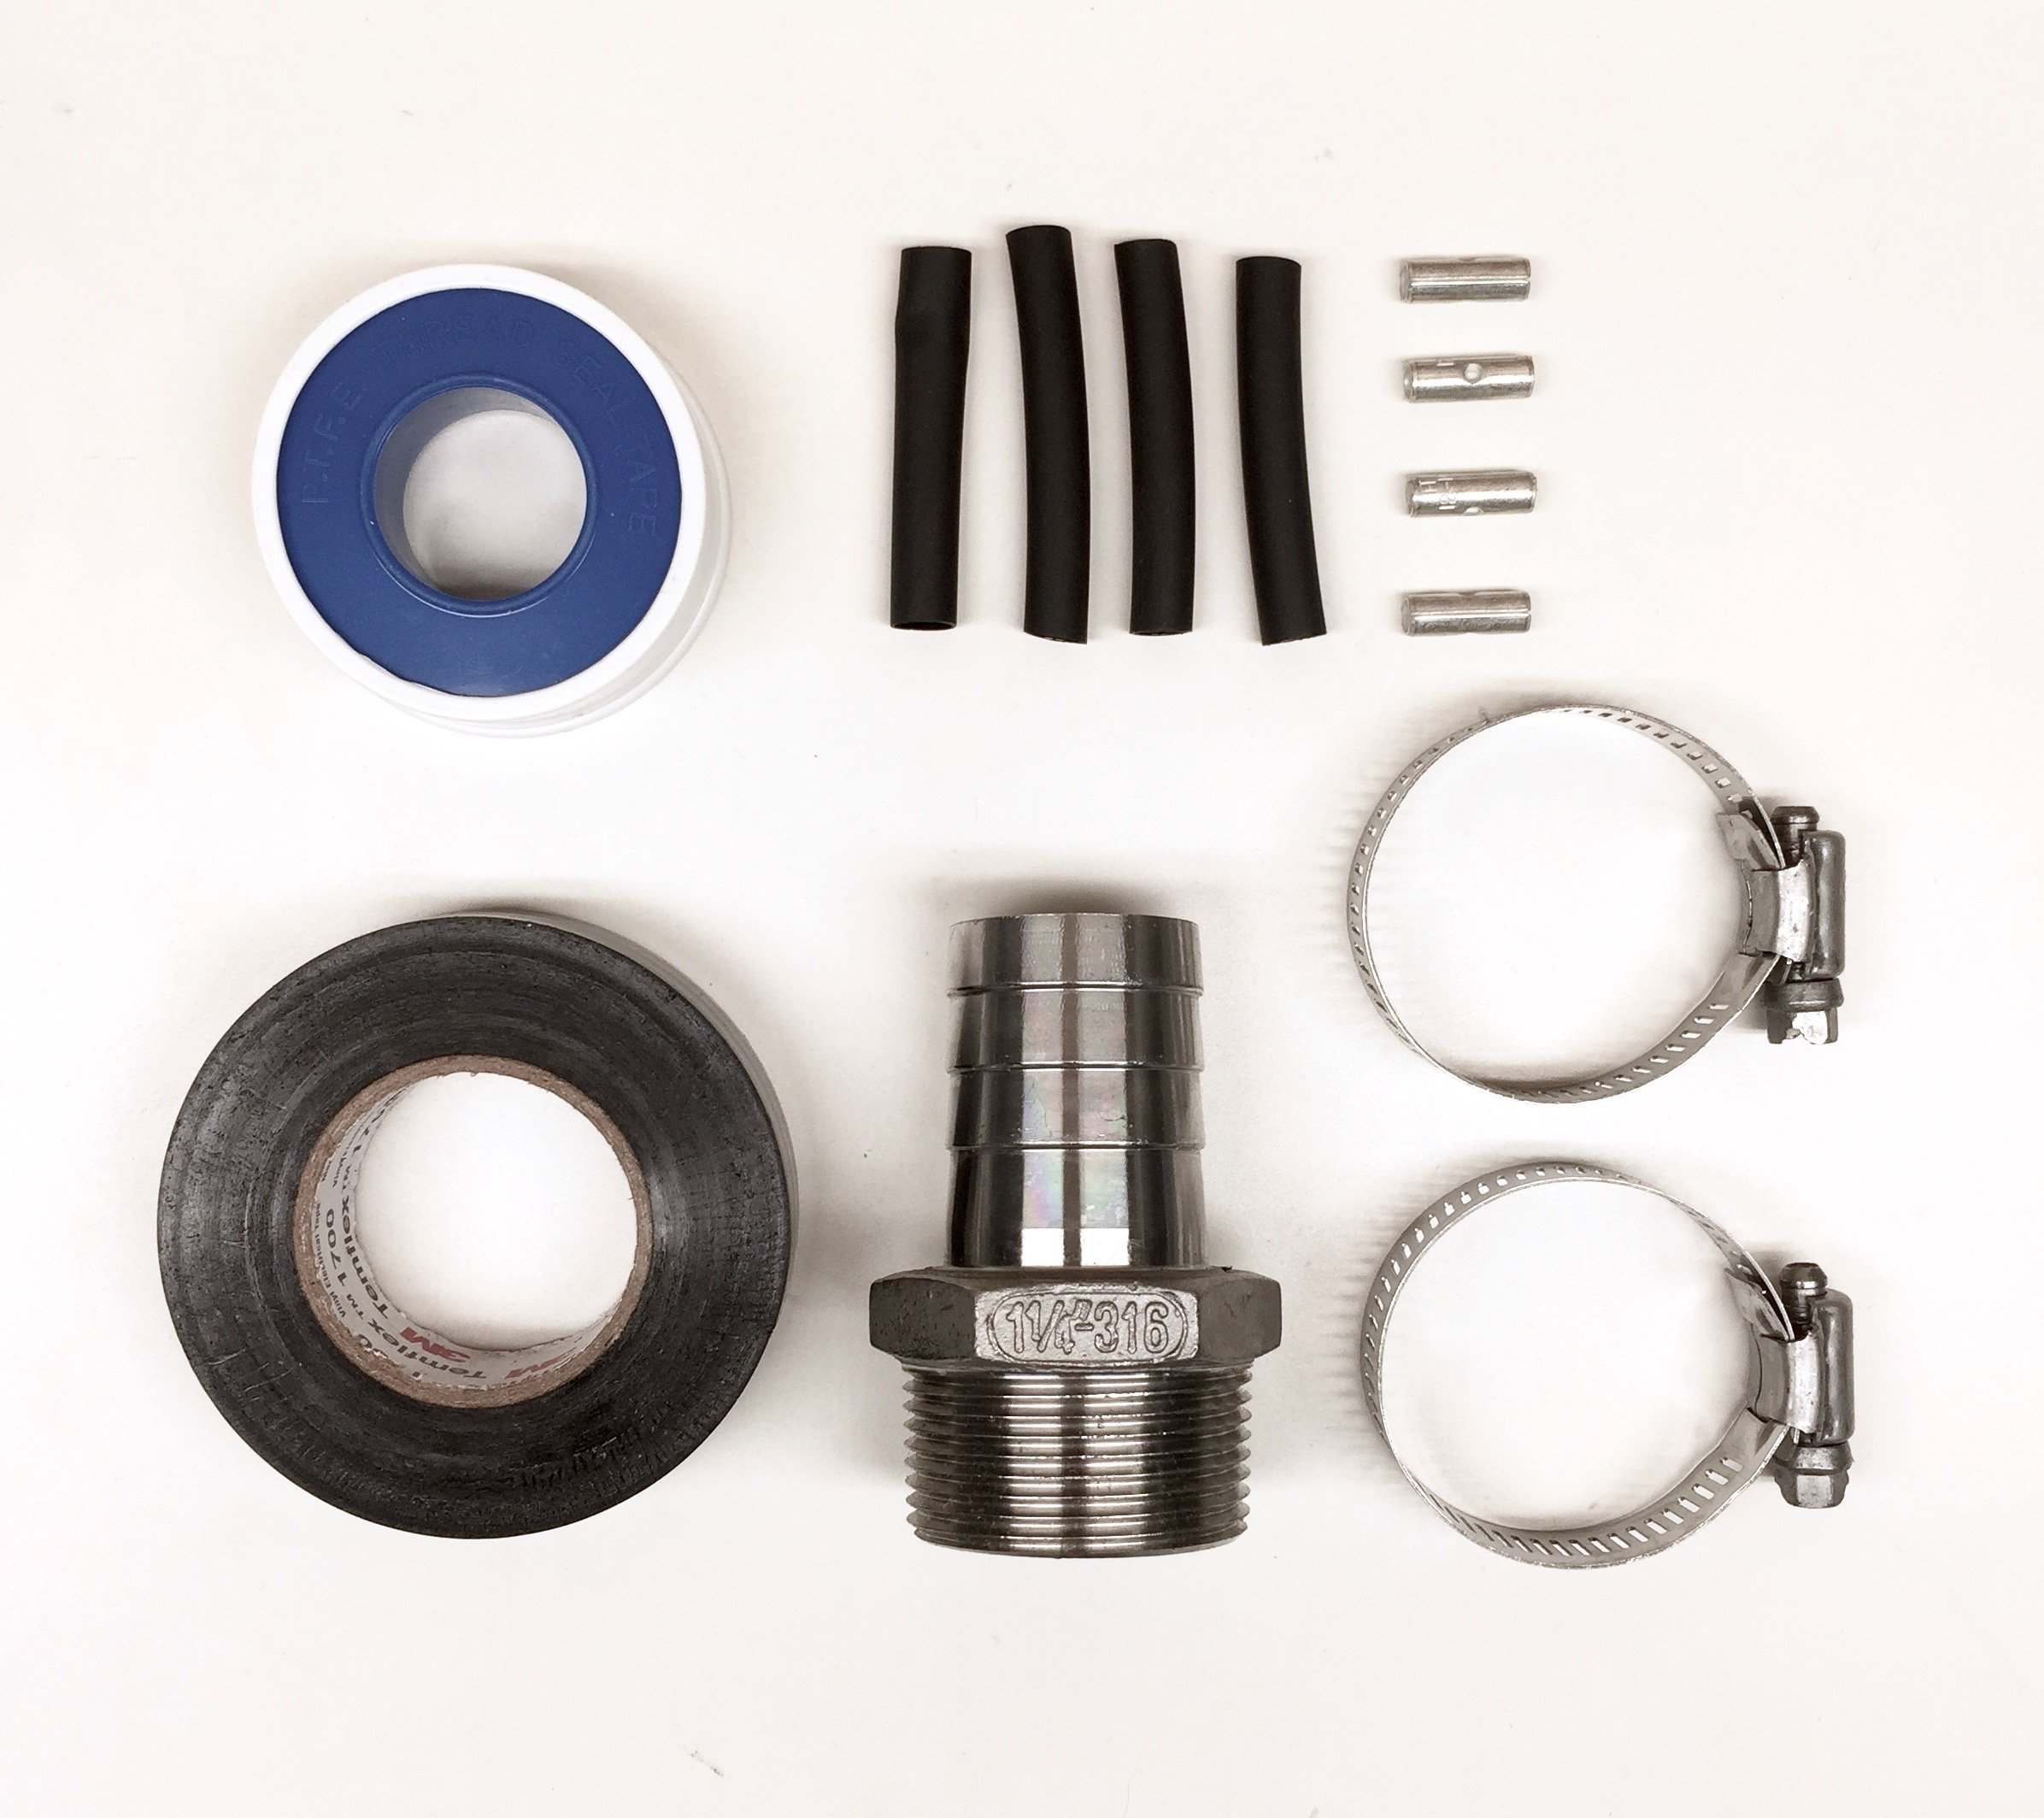 Well Pump Installation Kit with Male NPT to Hose Barb, Heatshrinks and Crimps to Splice 4 Wires - RPS Solar Pumps (Stainless Steel, 1-1/4'' Male NPT to 1-1/4'' Hose Barb)